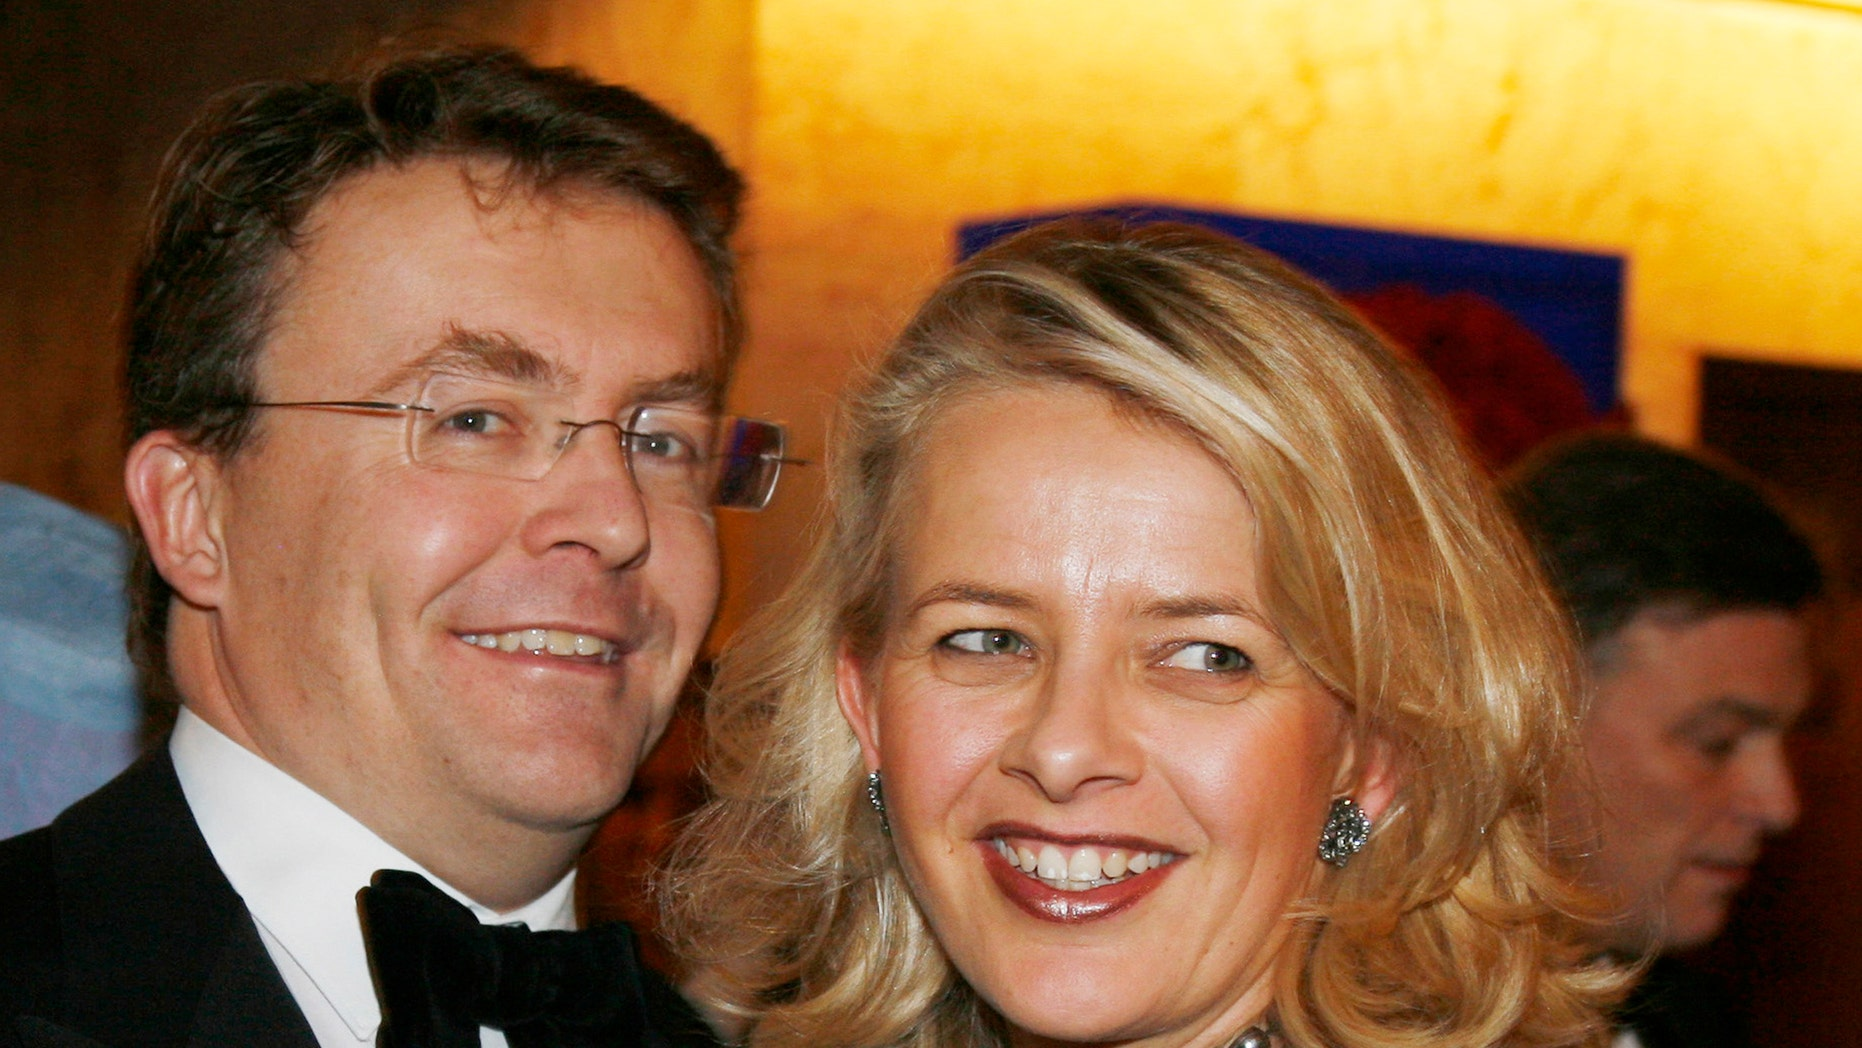 Dec. 10, 2008 - FILE photo of Dutch Prince Johan Friso and his wife Mabel, at a gala dinner at the Grand Hotel in Oslo, Norway. The Dutch royal house  on Monday Aug. 12, 2013 announced that Prince Johan Friso, injured in 2012 ski accident, has died.